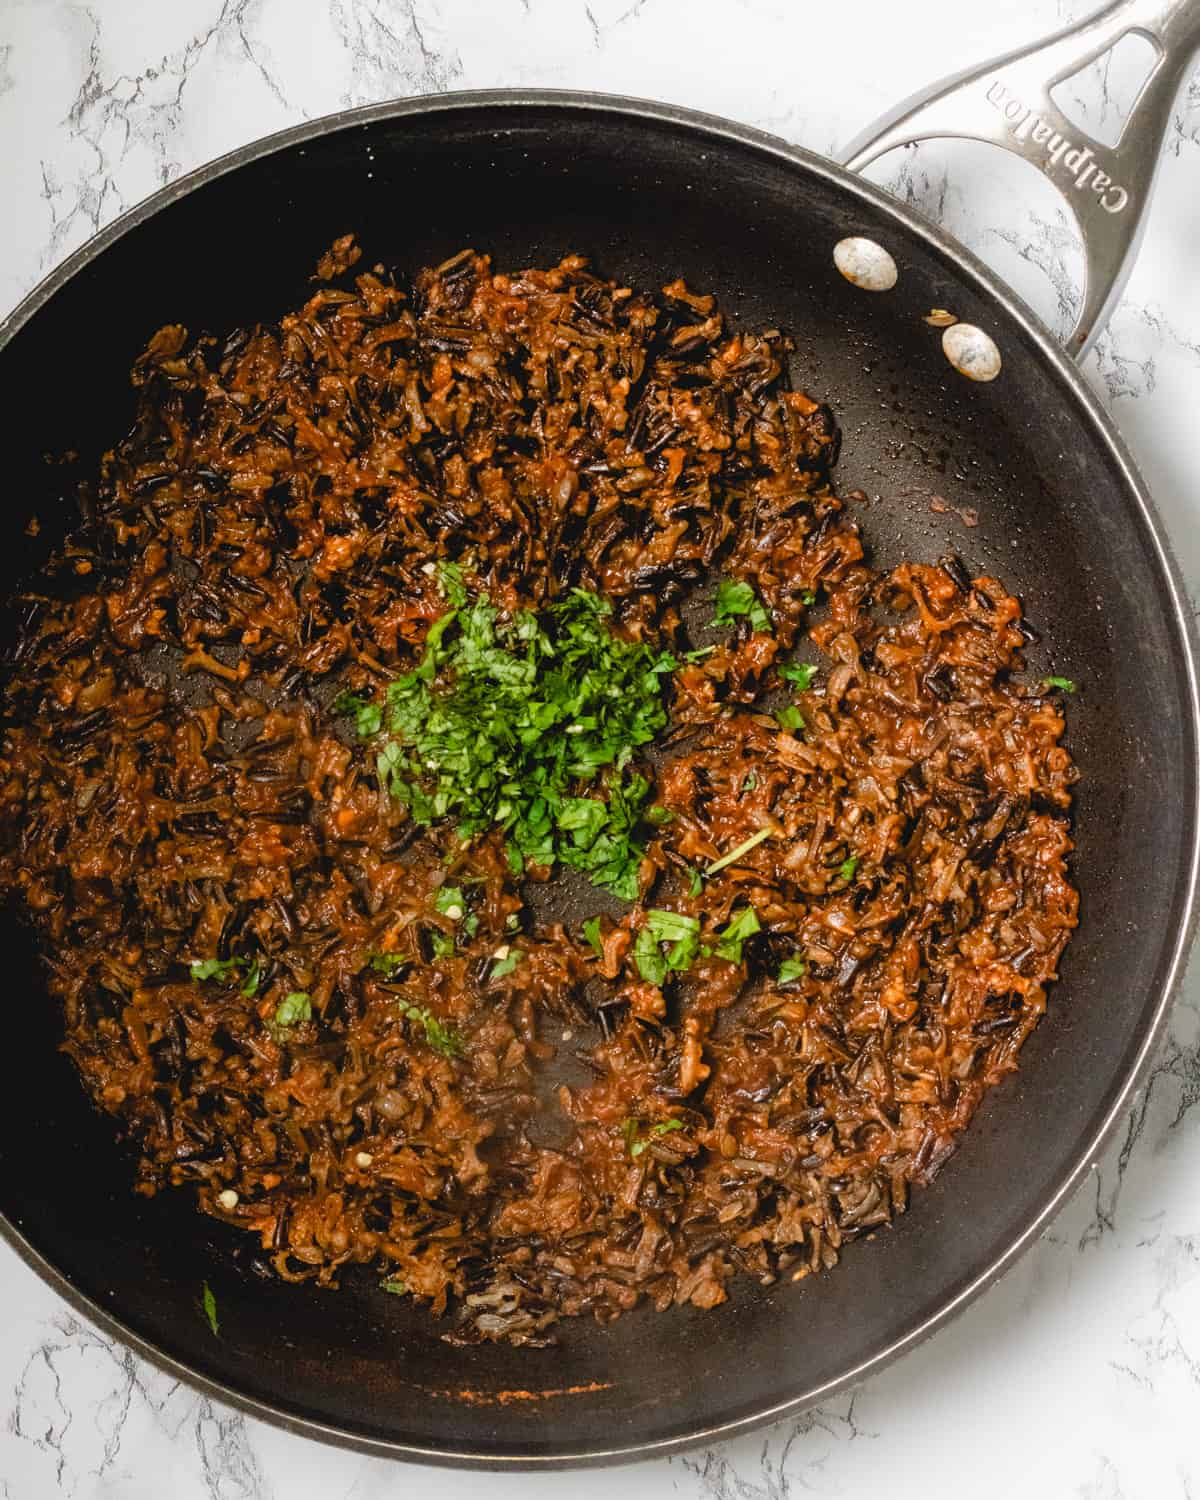 Pan of cooked Mexican wild rice with cilantro.